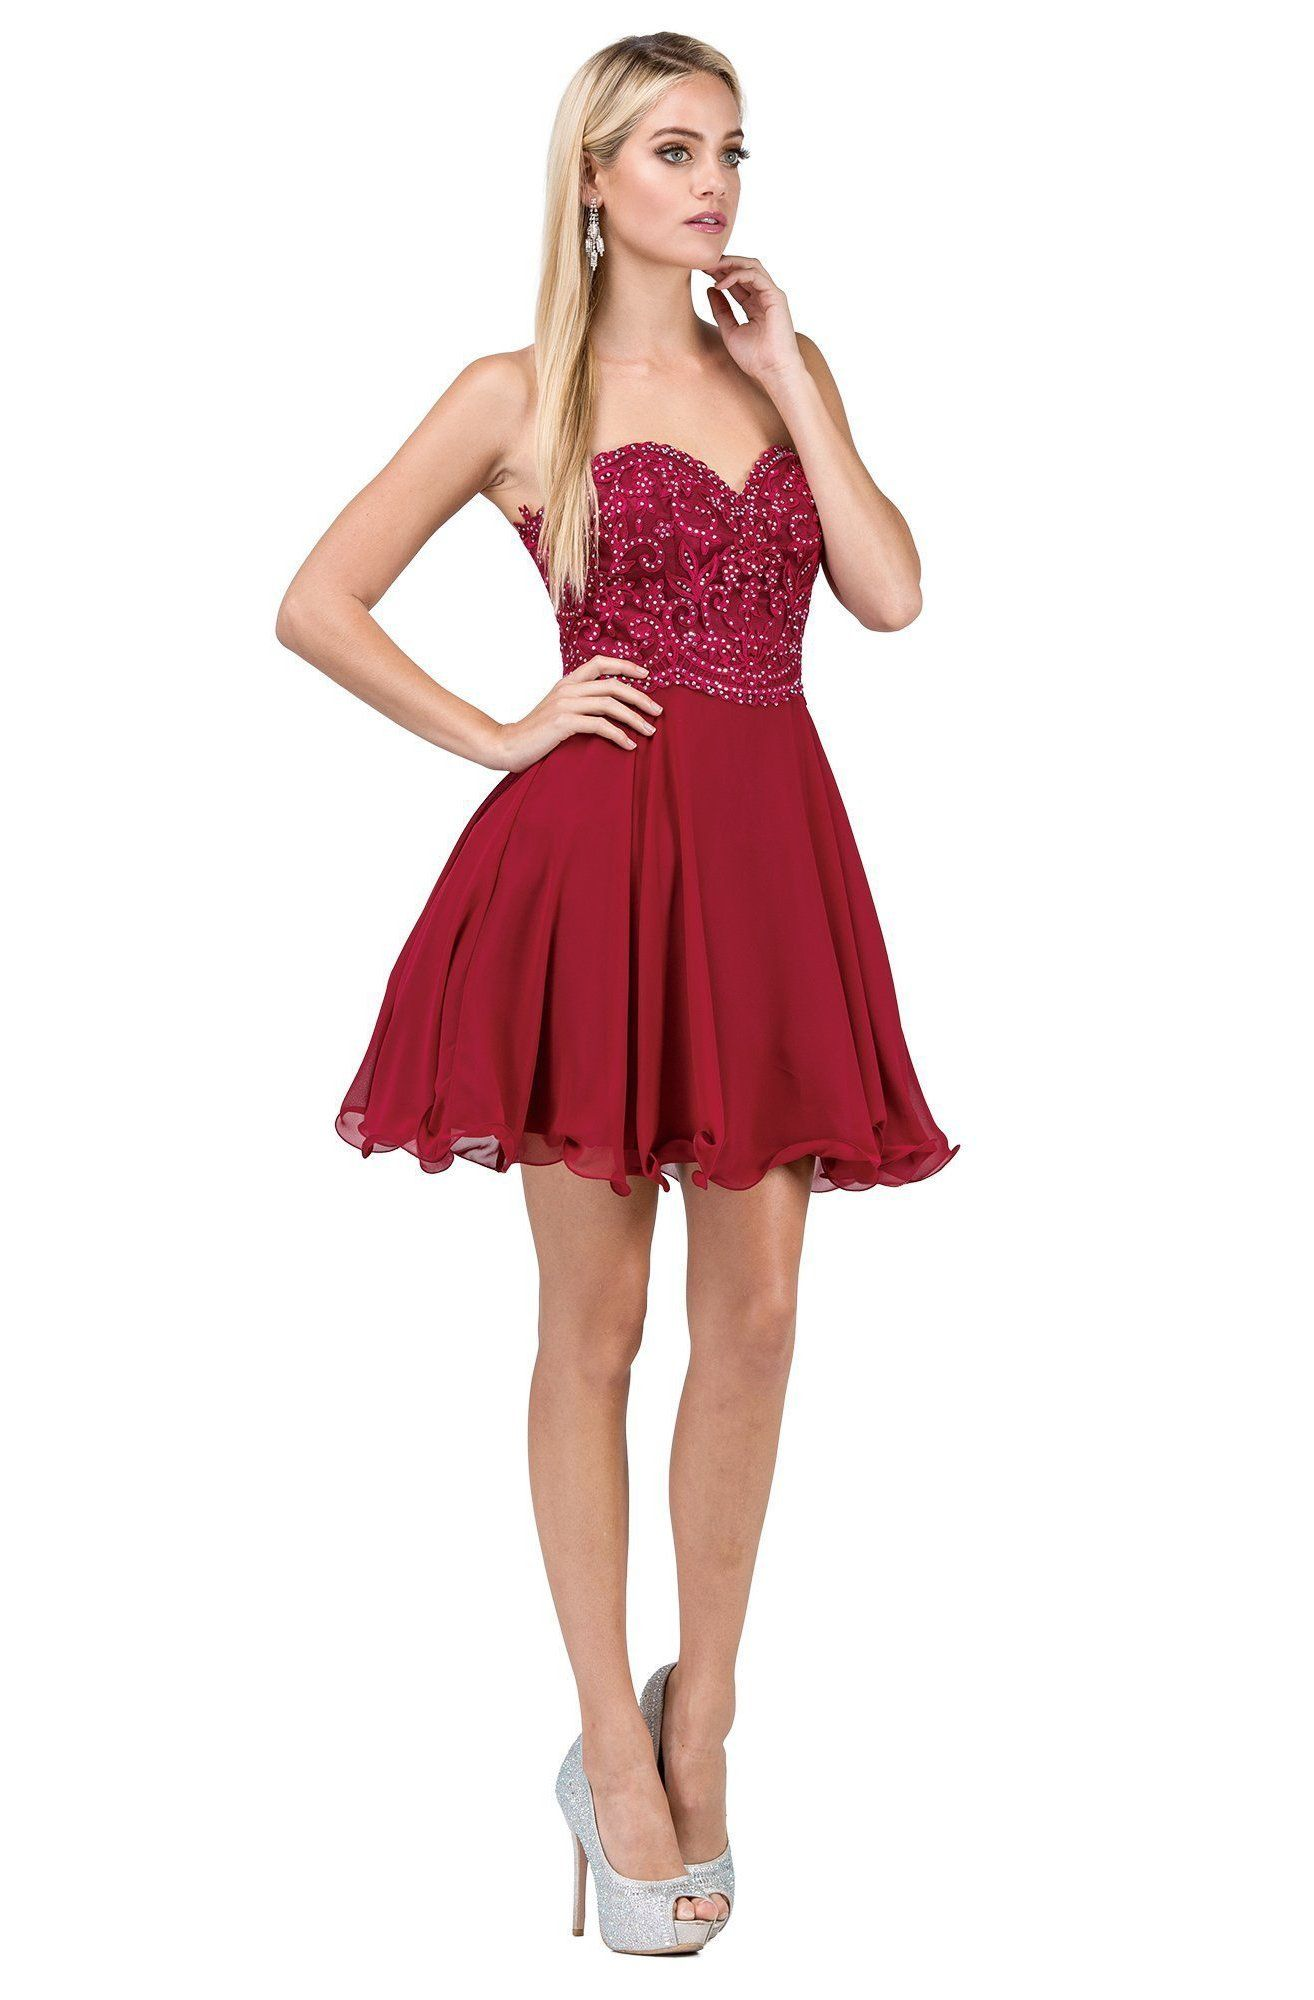 Dancing Queen 3005 Scallop Detailed Strapless Homecoming Dress Fit And Flare Cocktail Dress Strapless Homecoming Dresses Homecoming Dresses [ 2000 x 1314 Pixel ]